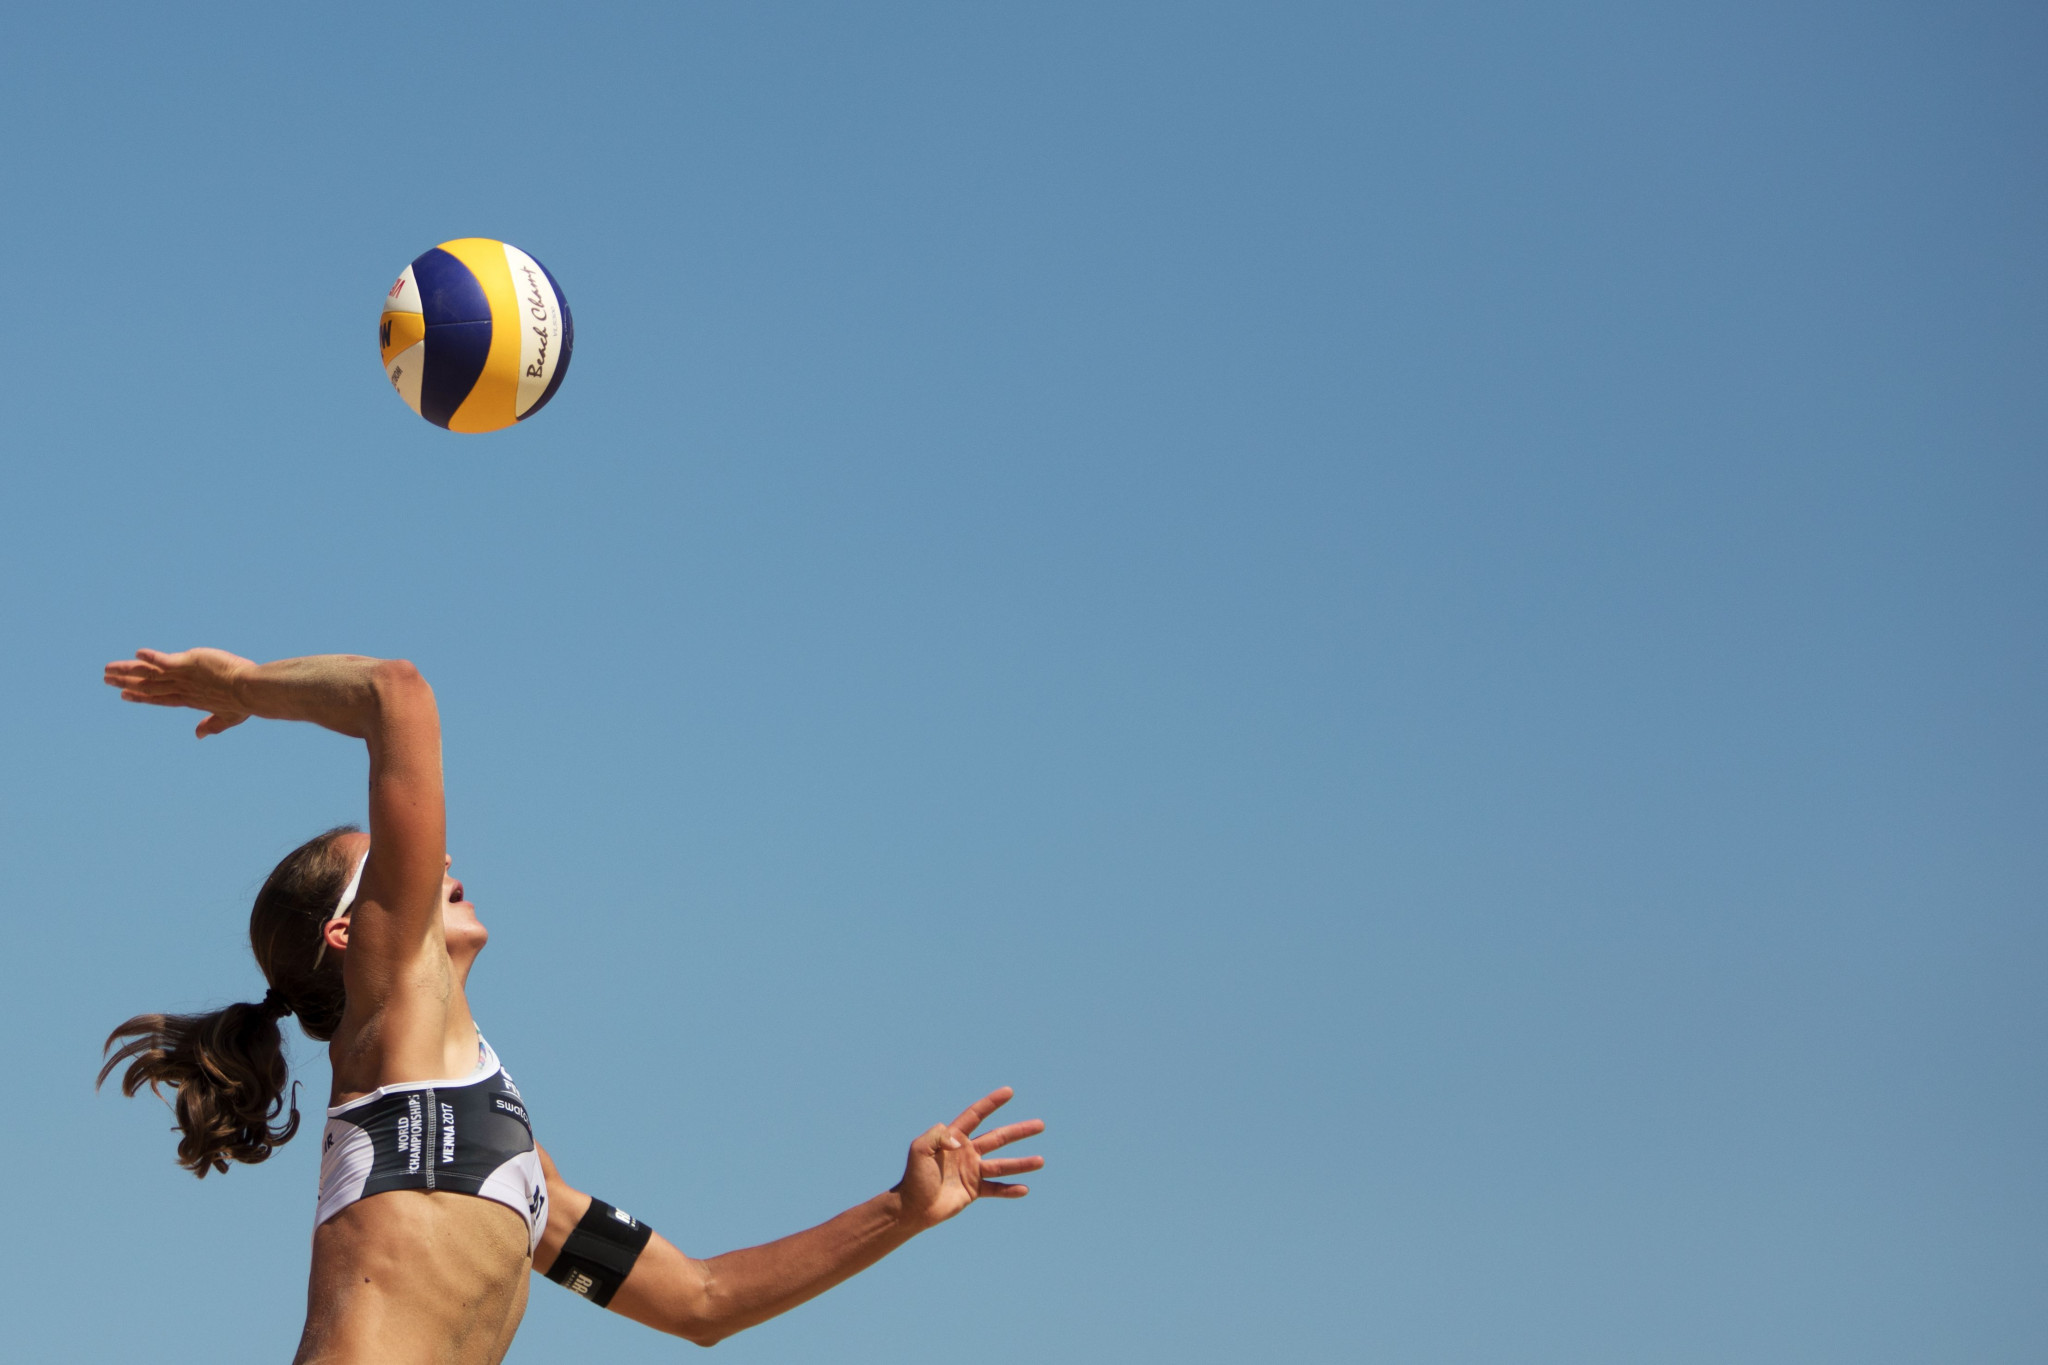 Top seeds Laboureur and Sude recover after losing opener at Beach Volleyball European Championships